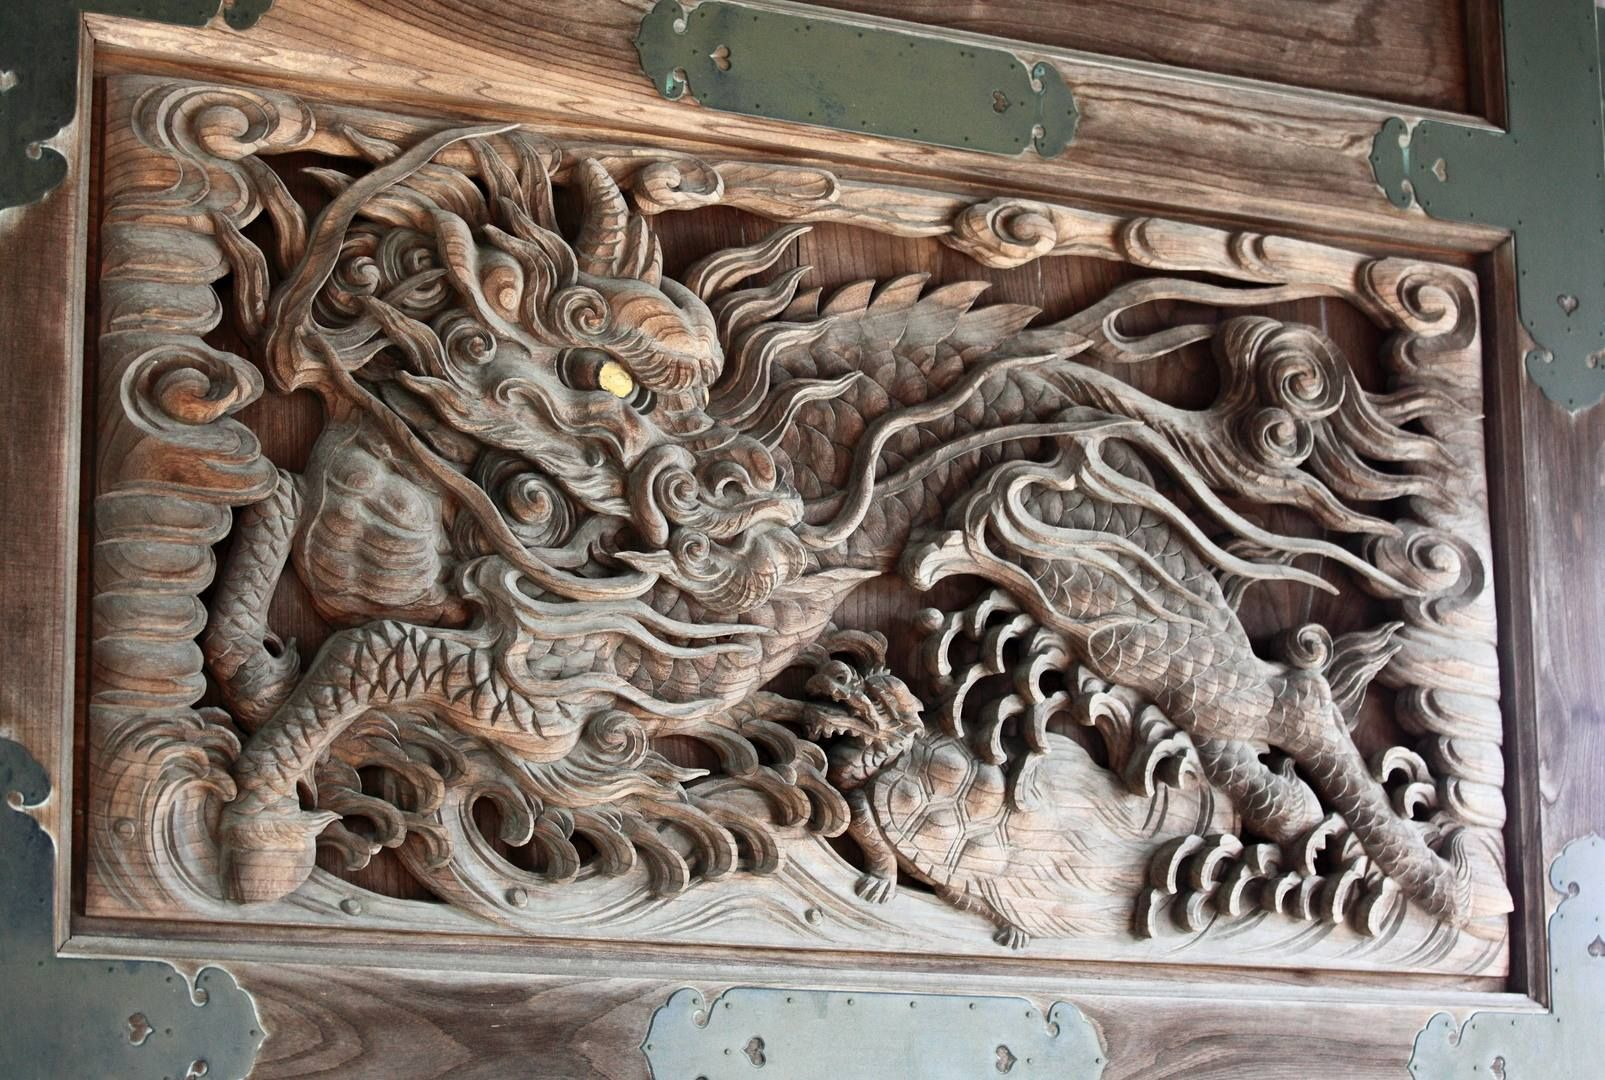 Dragon horse in wood carving